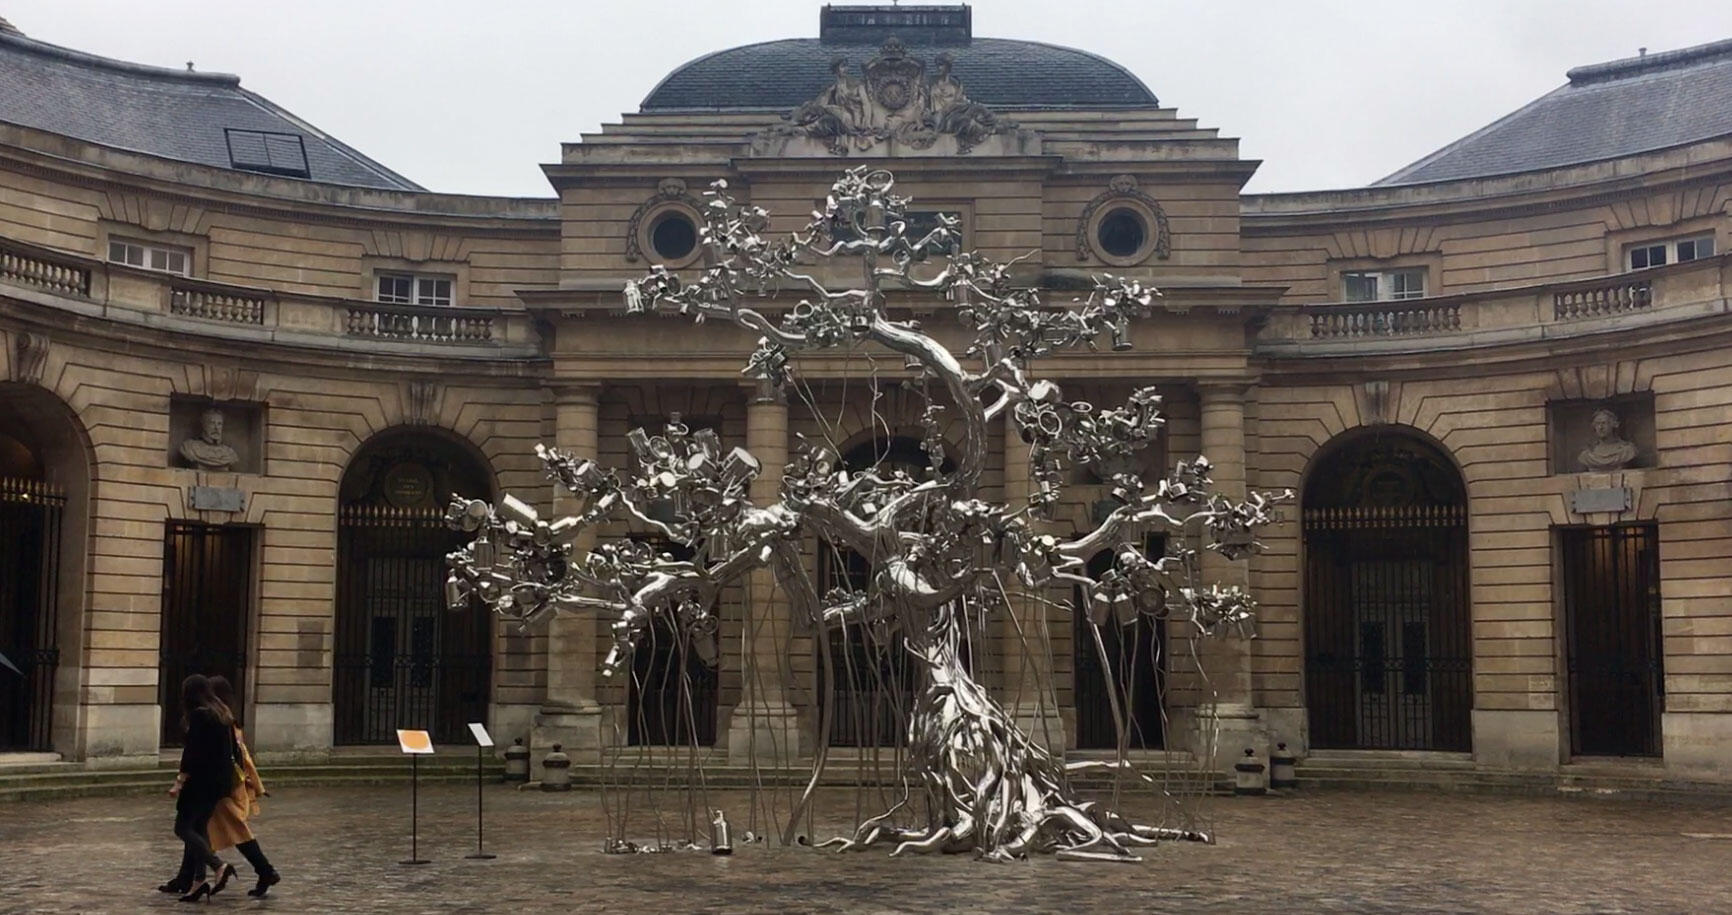 People Tree, 2018 , Subodh Gupta, Monnaie de Paris